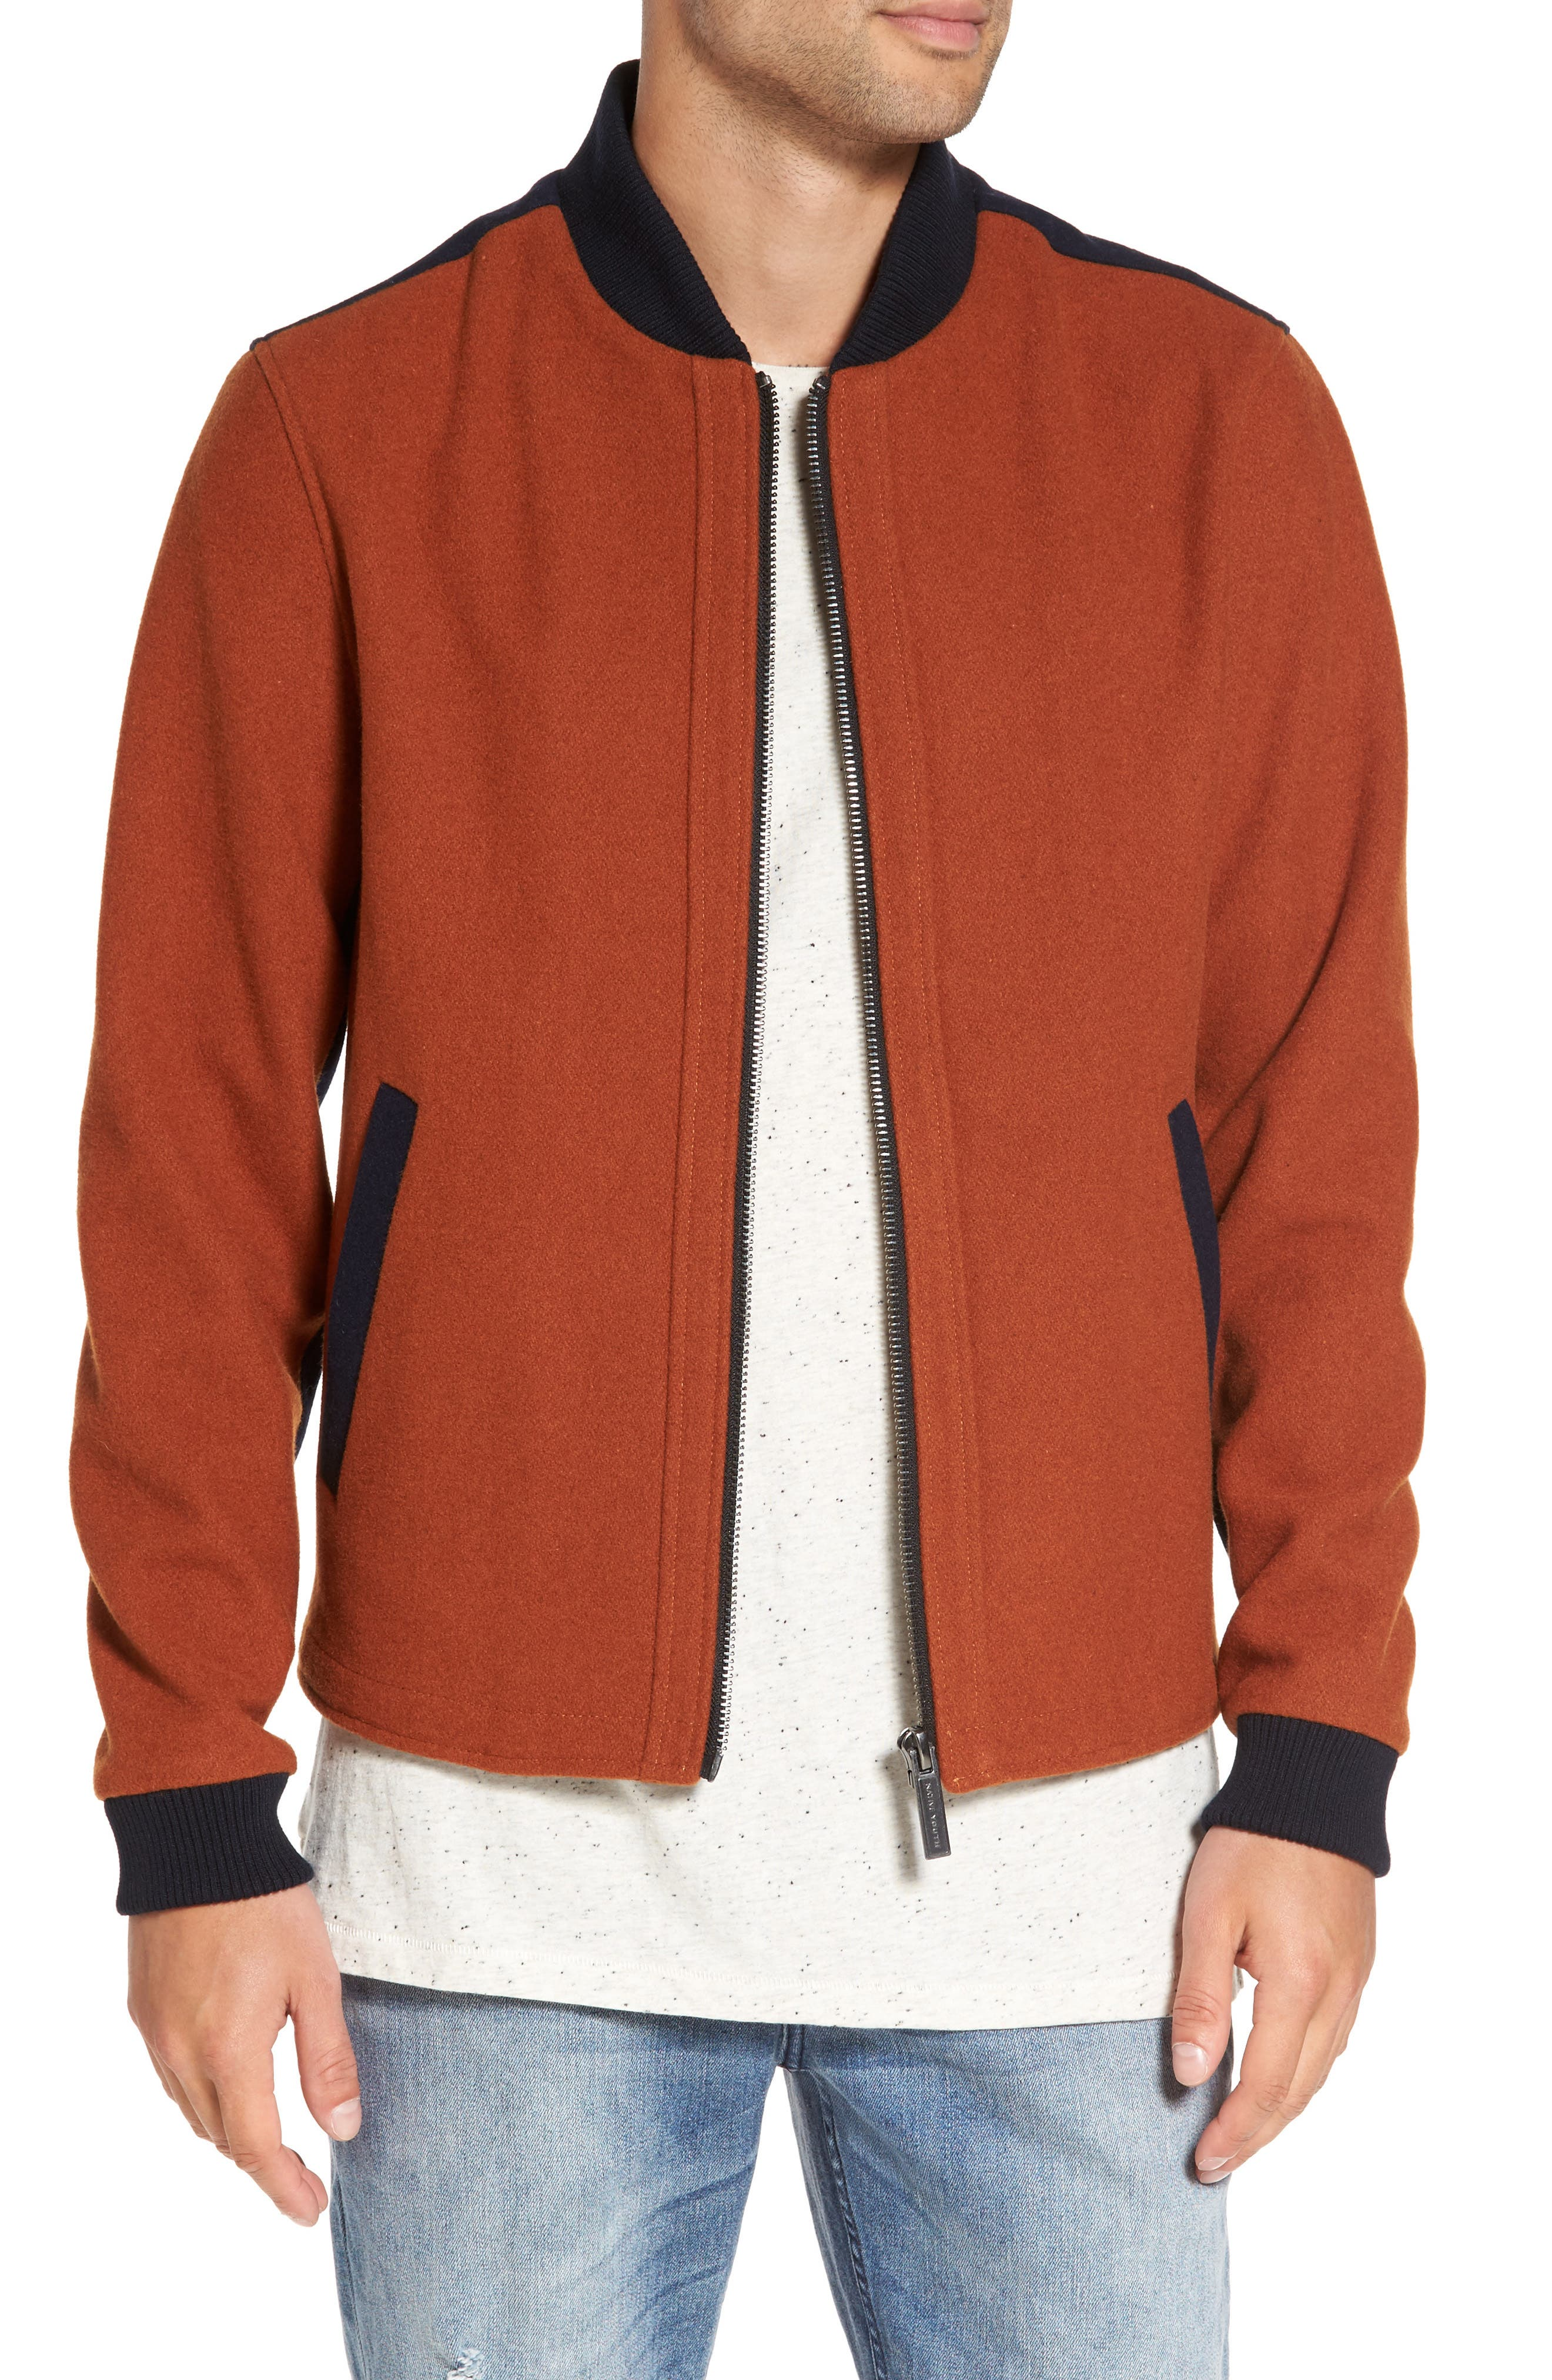 Maldon Bomber Jacket,                         Main,                         color, 800